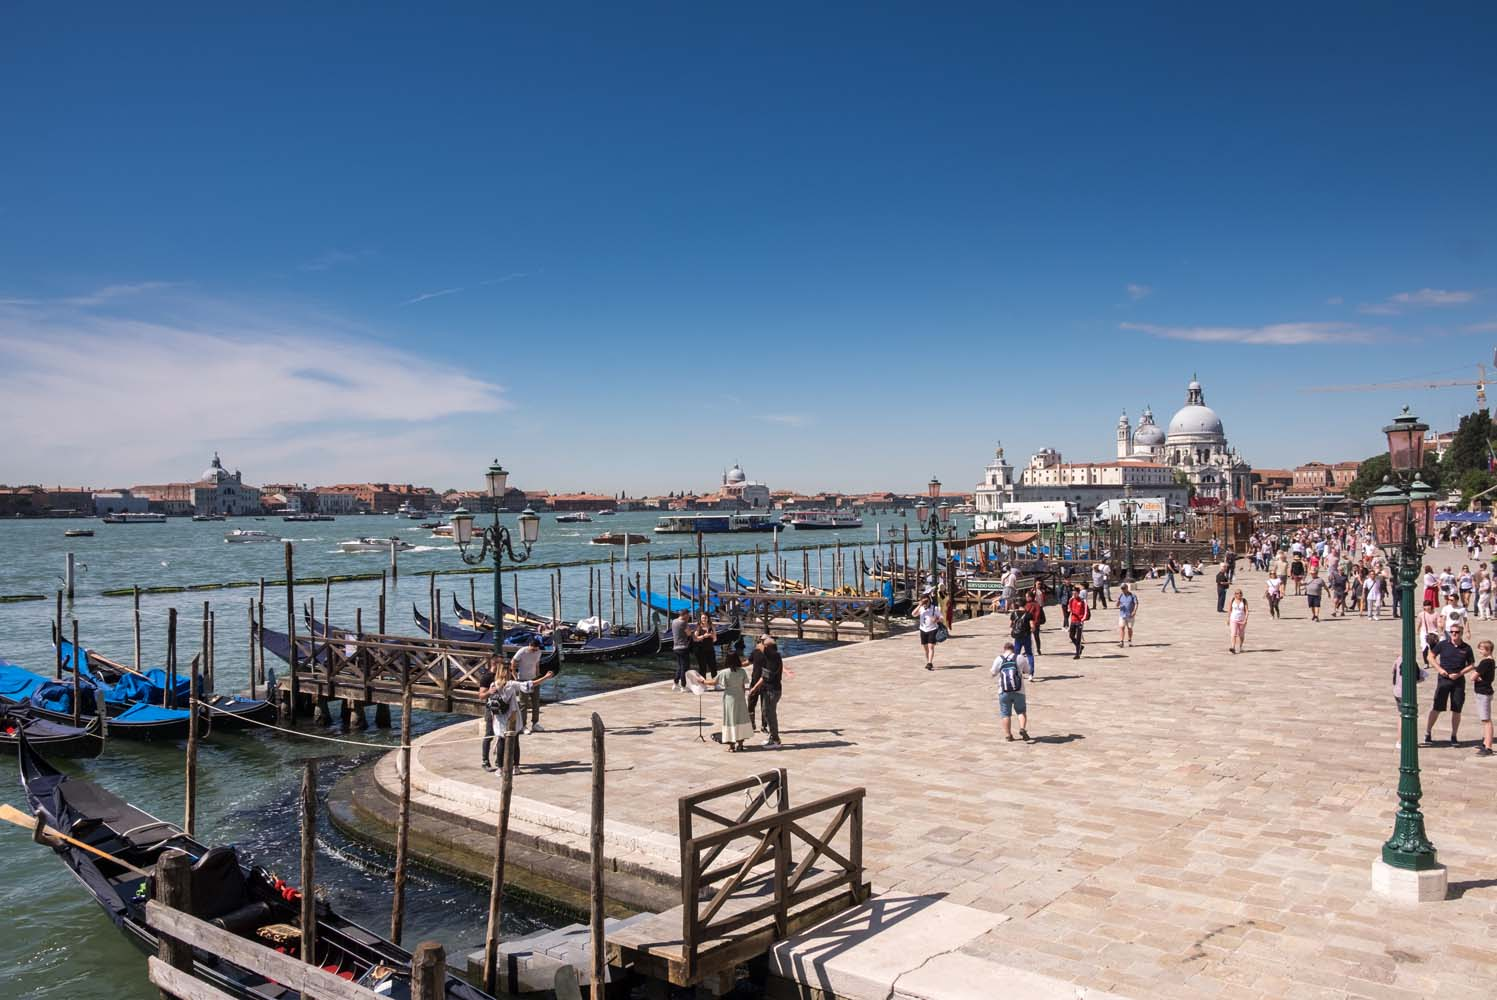 Crowded & expensive but still Venice, Italy is worth a trip. How to spend a weekend in Venice, what to see, what to skip & where to eat the best spaghetti.